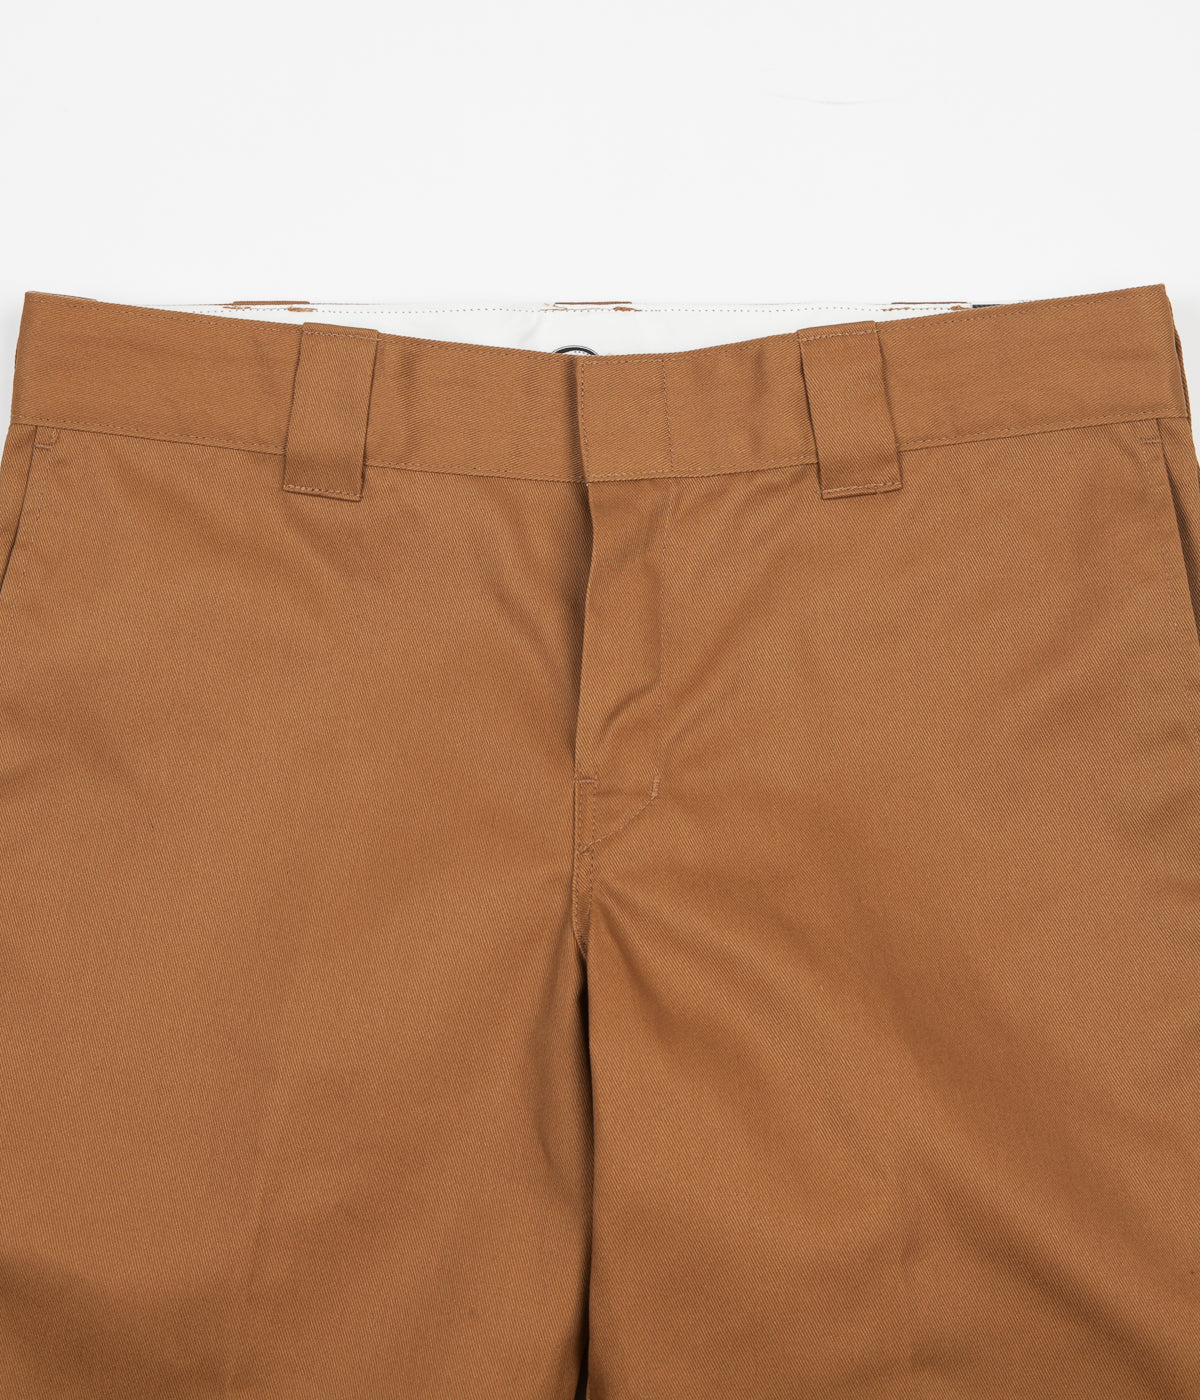 Dickies 873 Slim Straight Work Trousers - Brown Duck